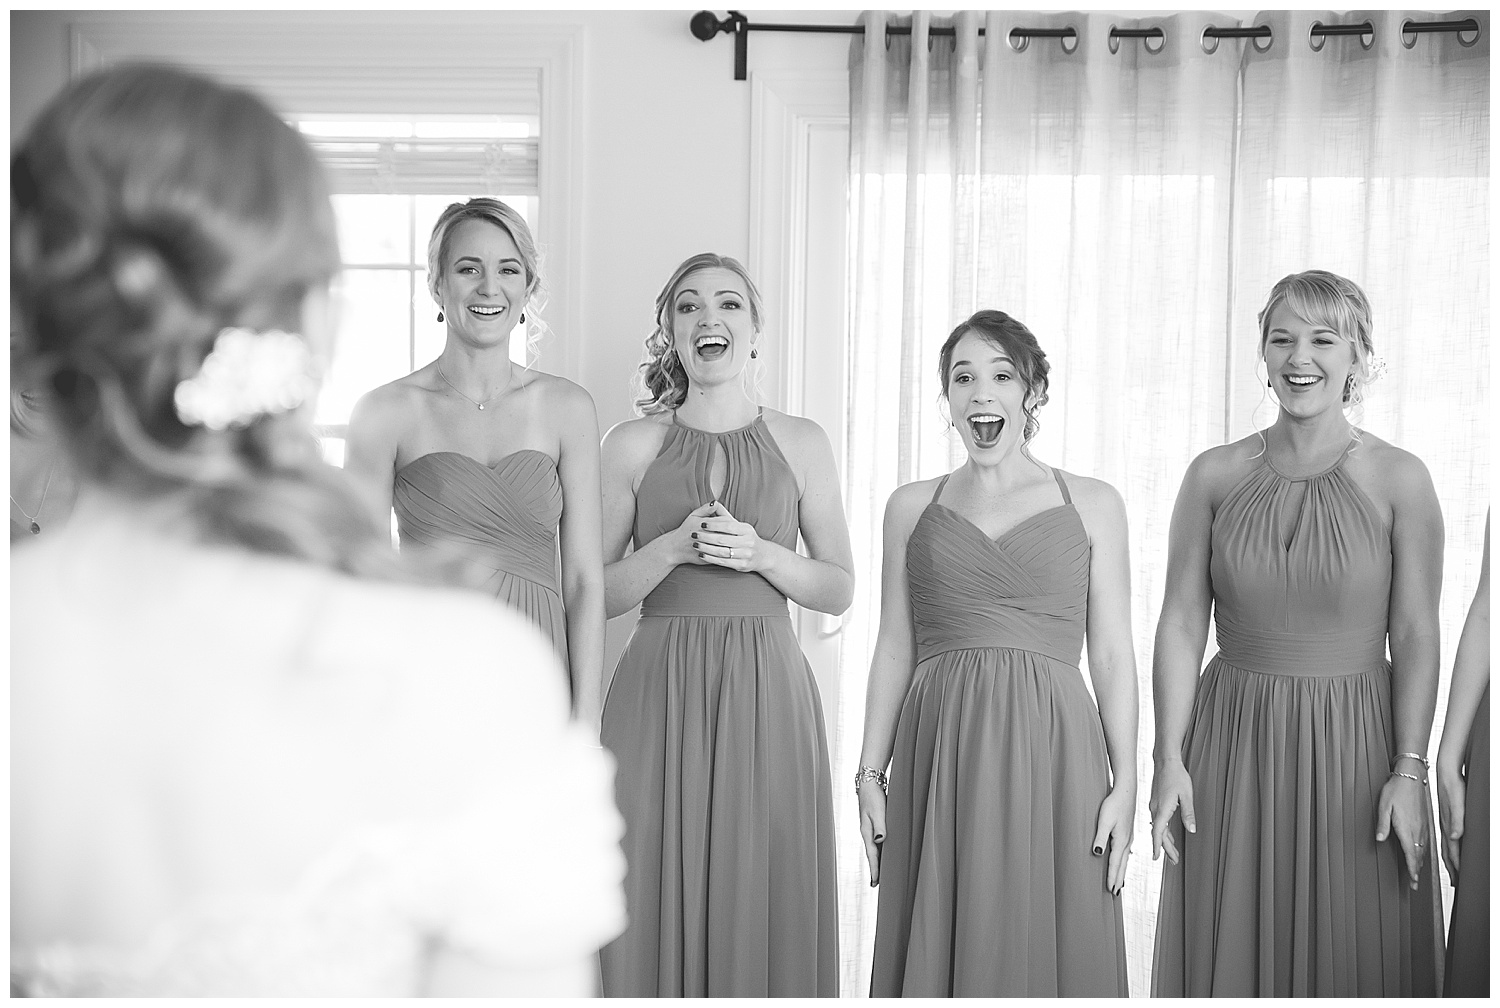 2Owl's Nest White Mountain Wedding - Bridesmaid Reveal, First Look at the Dress